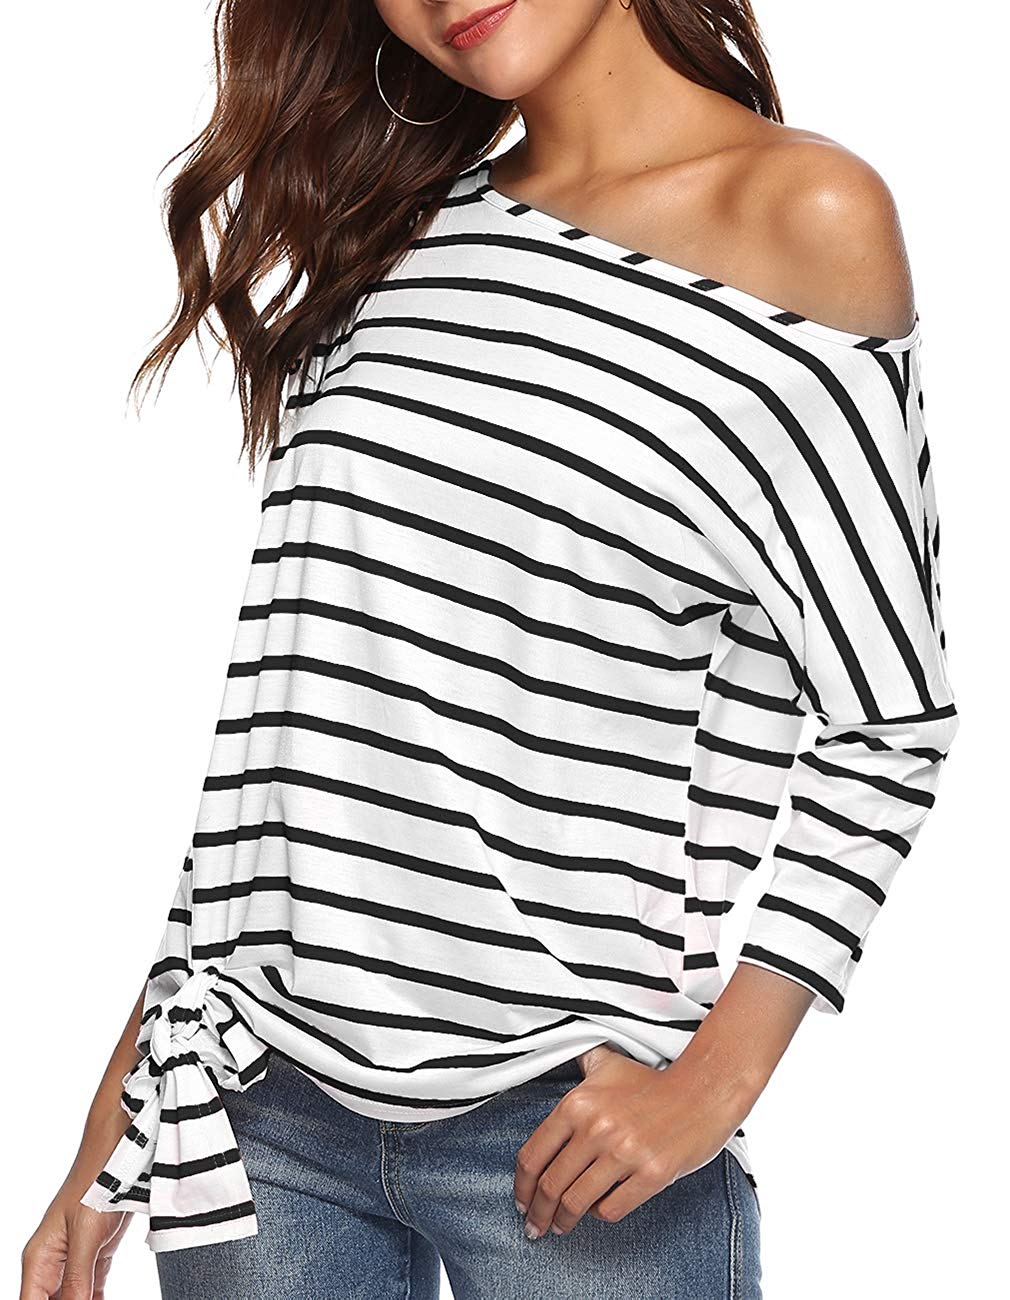 78e950f88d0 Get Quotations · Defal Womens Sexy Oblique Off Shoulder 3/4 Sleeve Colorful  Striped Tunic T-Shirt